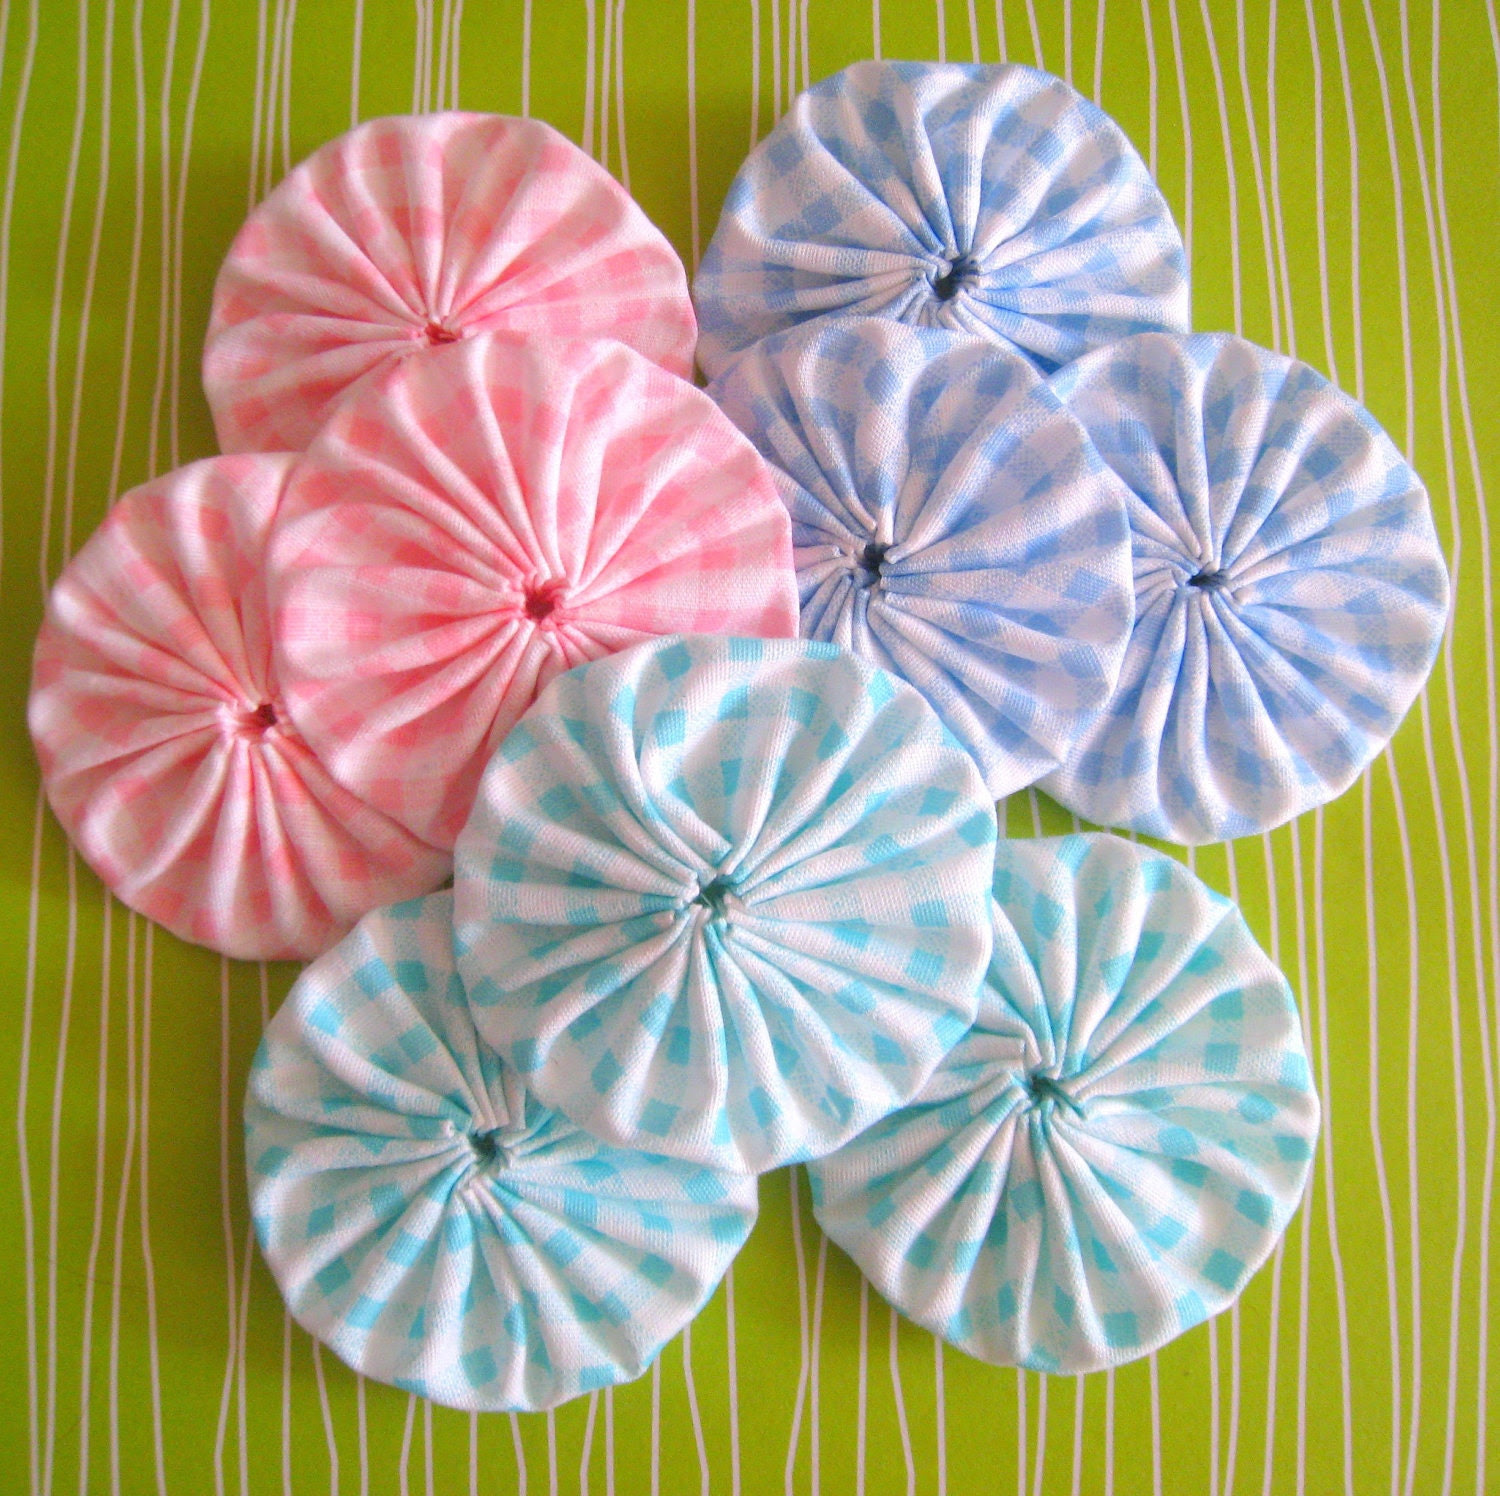 Lot of 9 , 2 inches Aqua Blue, Mint Green,  Baby Pink and White Gingham Cotton YoYo Appliques